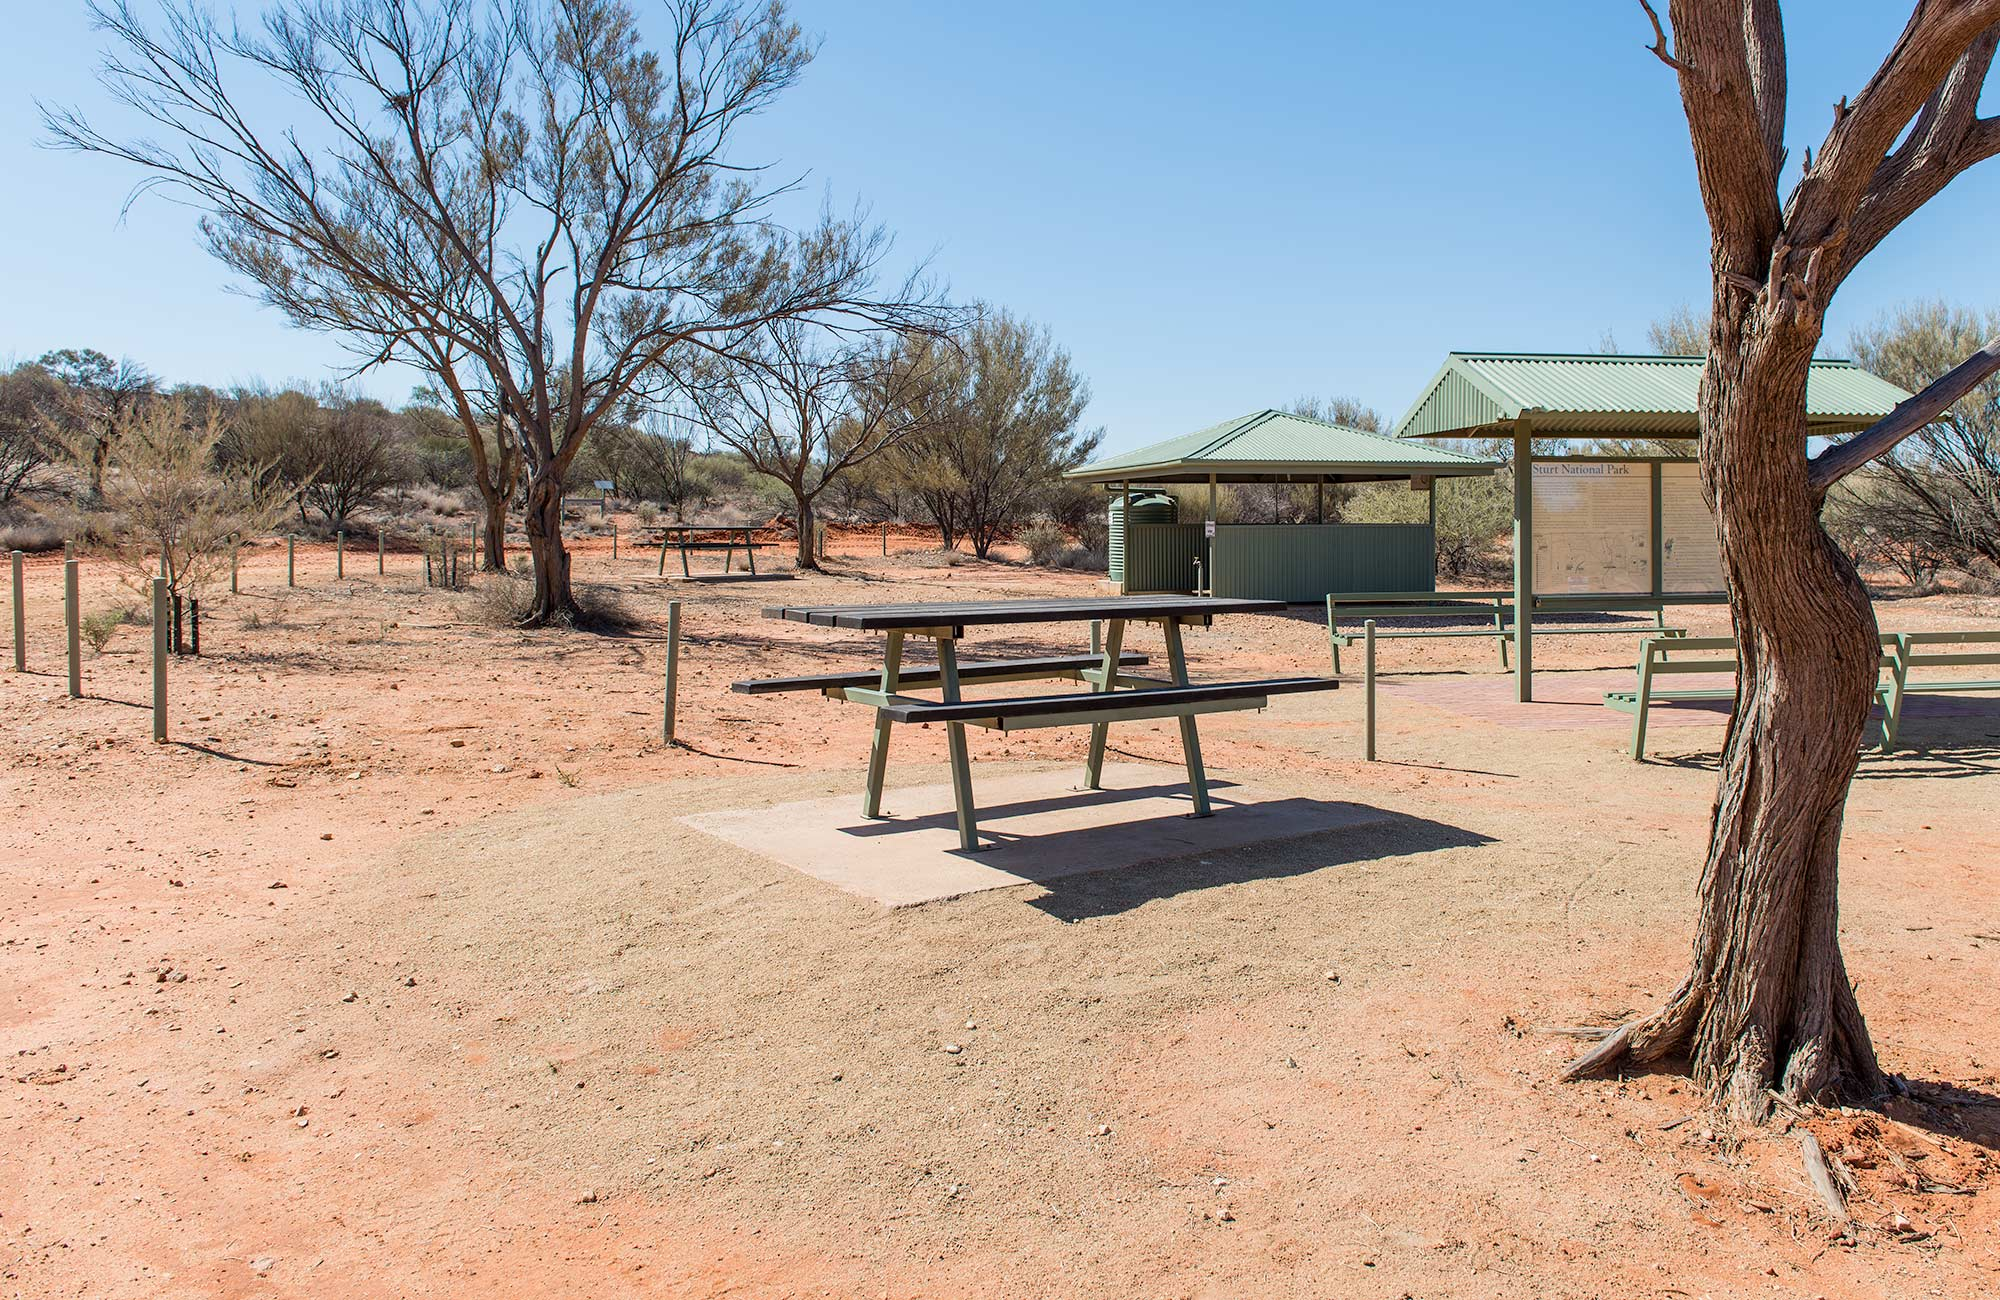 Olive Downs campground, Sturt National Park. Photo: John Spencer